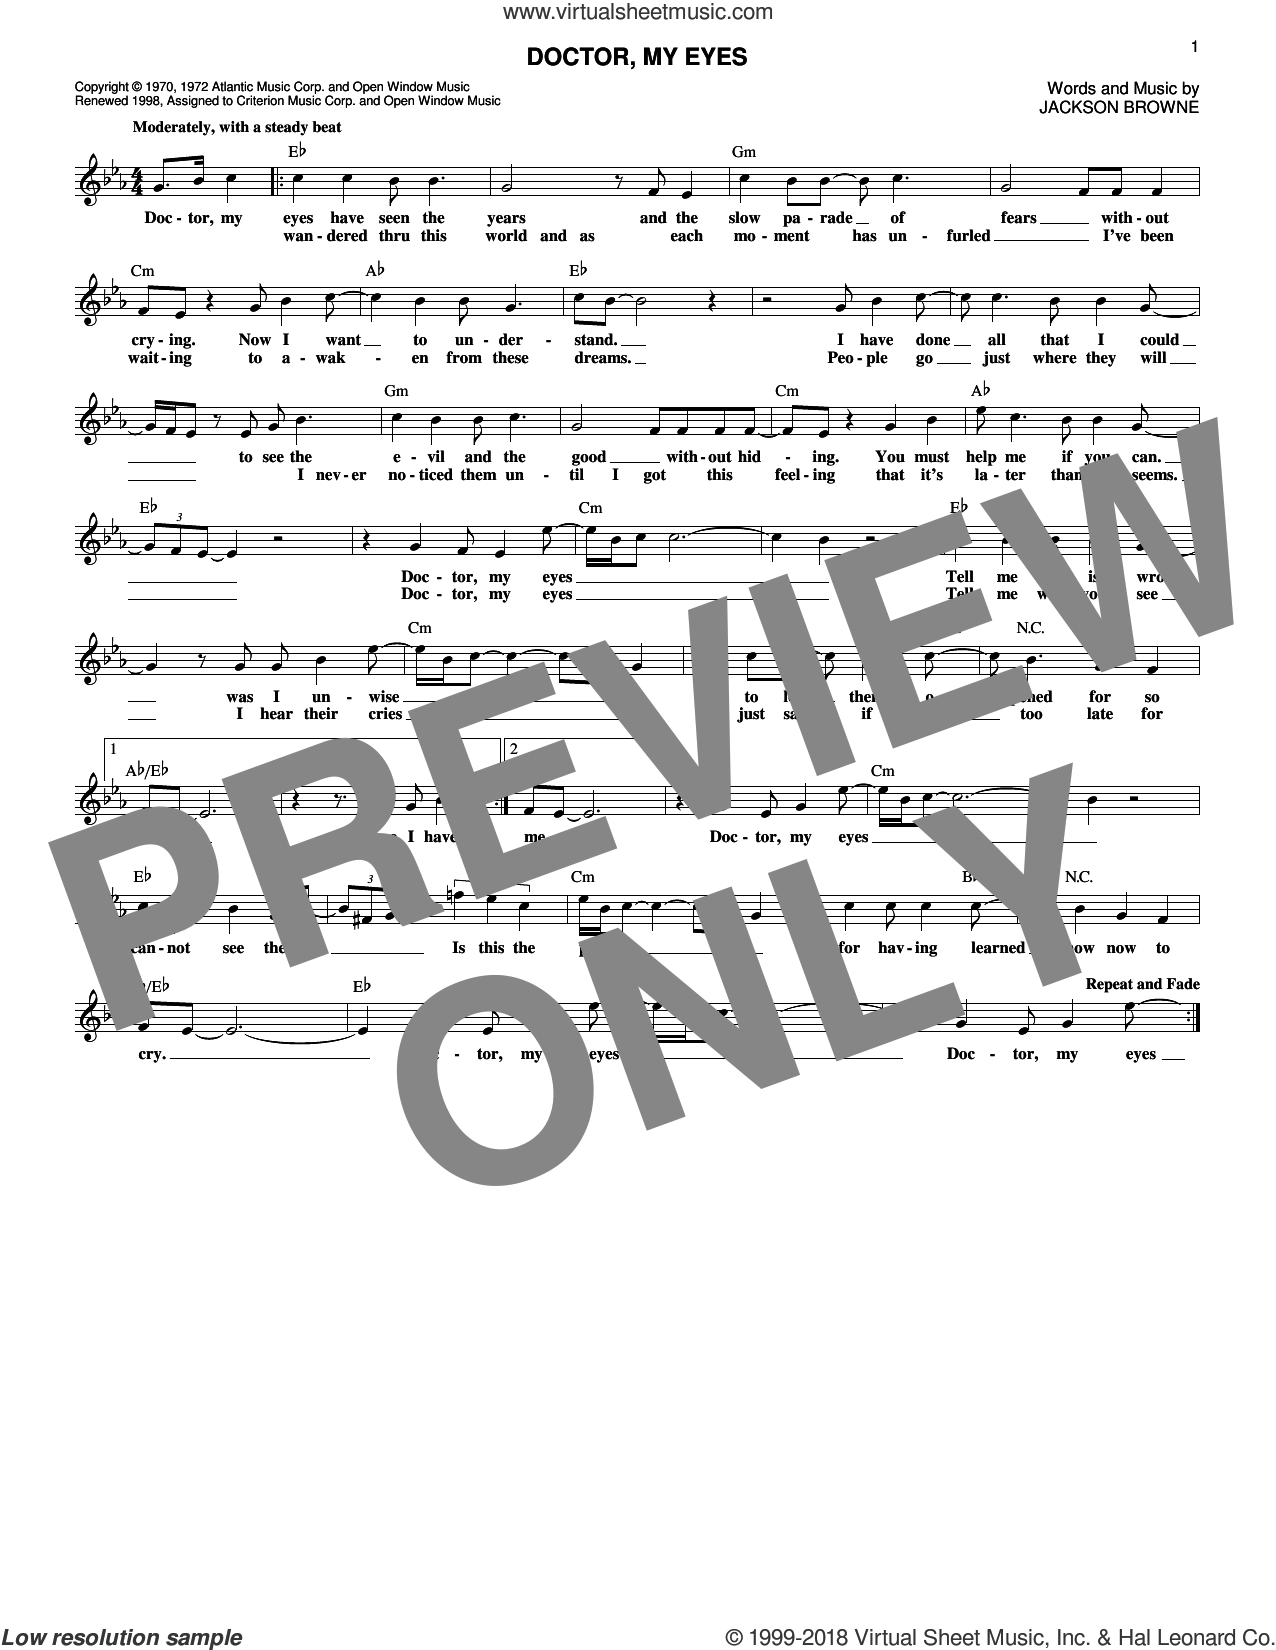 Doctor, My Eyes sheet music for voice and other instruments (fake book) by Jackson Browne, intermediate skill level